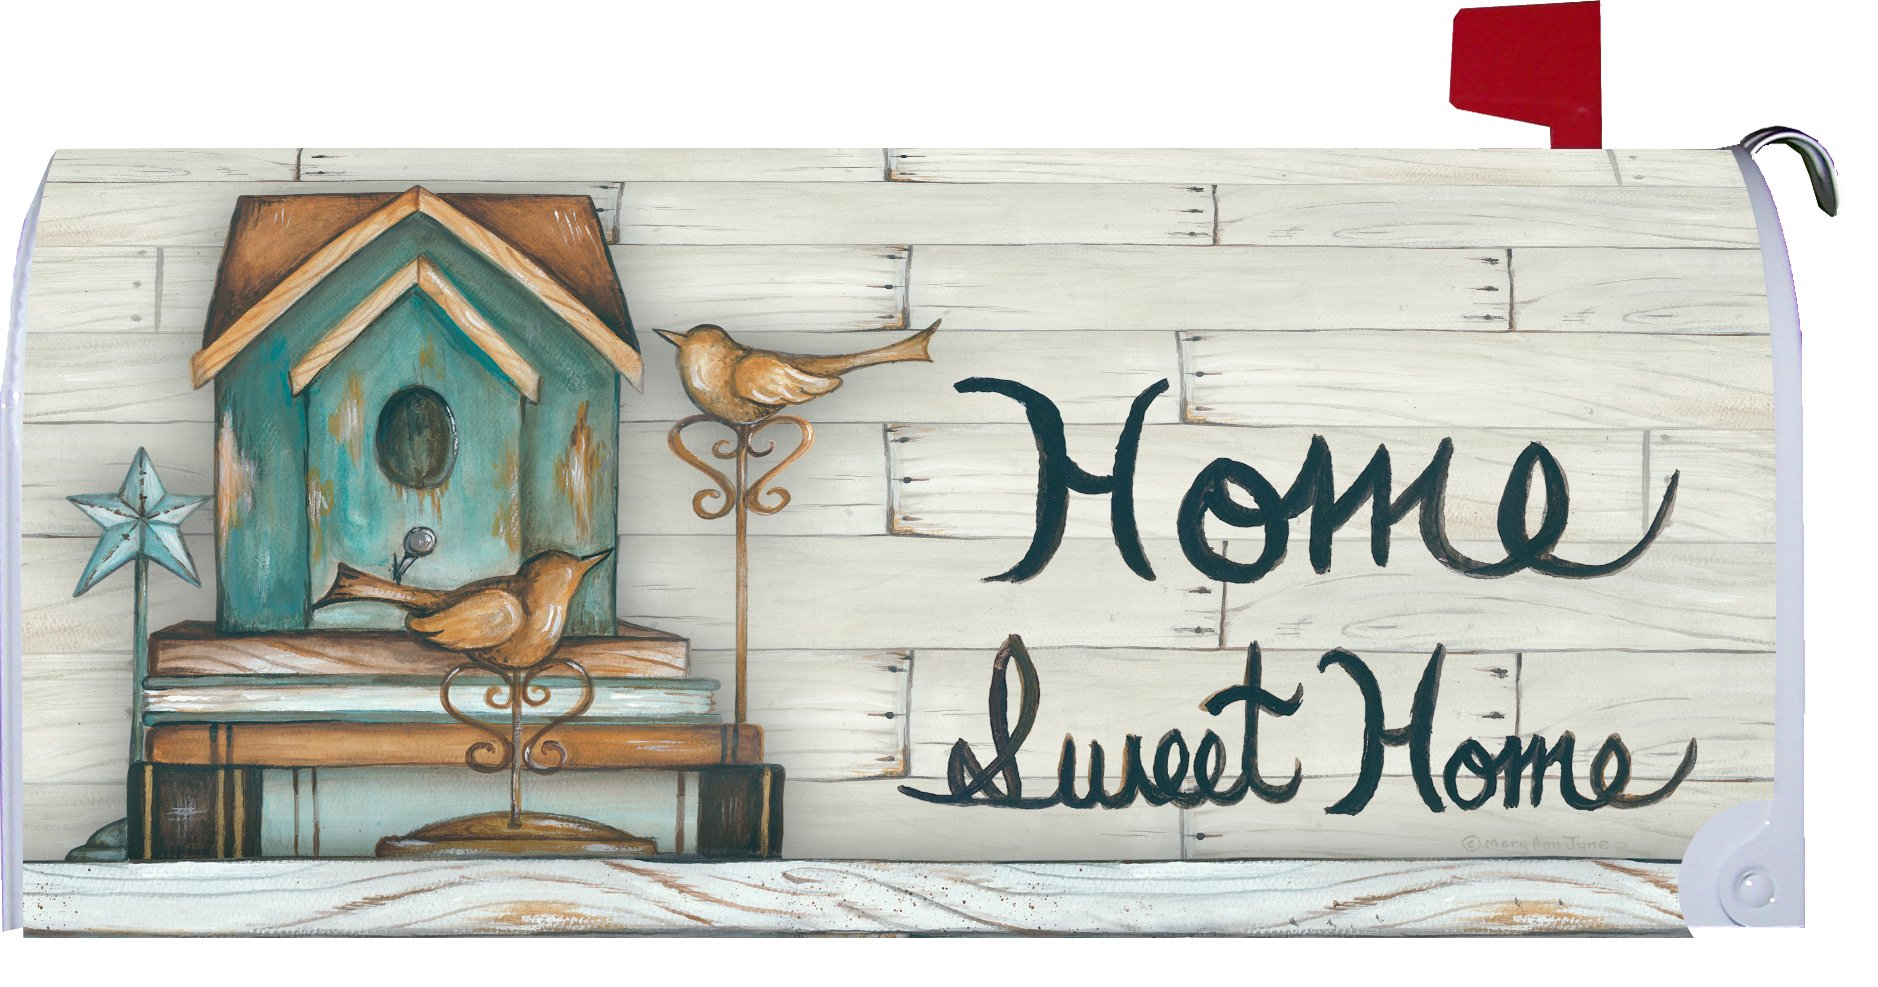 Home Sweet Home - Mailbox Makover Cover - Vinyl witn Magnetic Strips for Steel Standard Rural Mailbox - Copyright, Licensed and Trademarked by Custom Decor Inc.